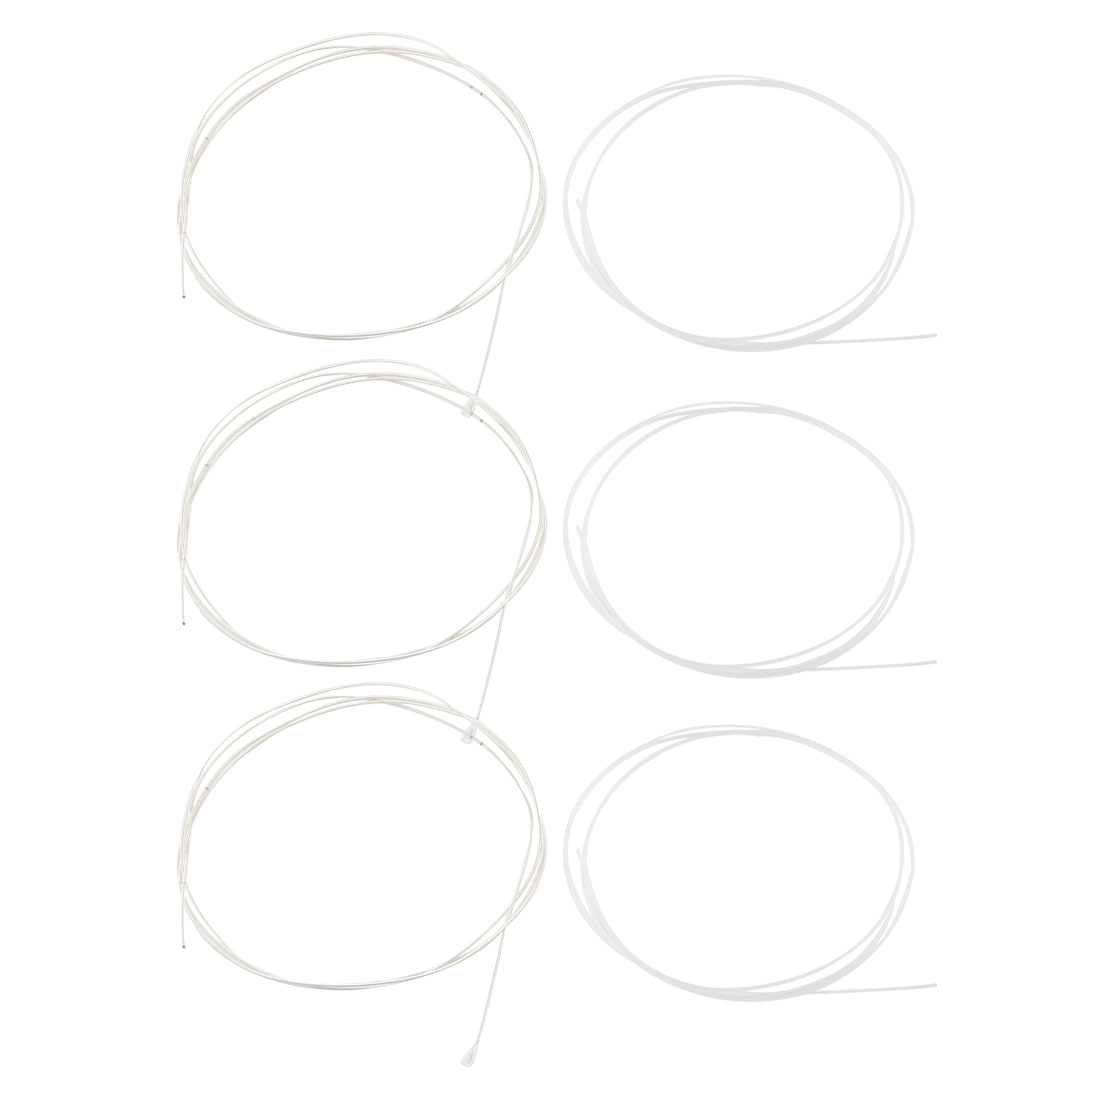 6 Pcs 219 Type Musical Clear Nylon Strings Lines for Guitar by Unique-Bargains